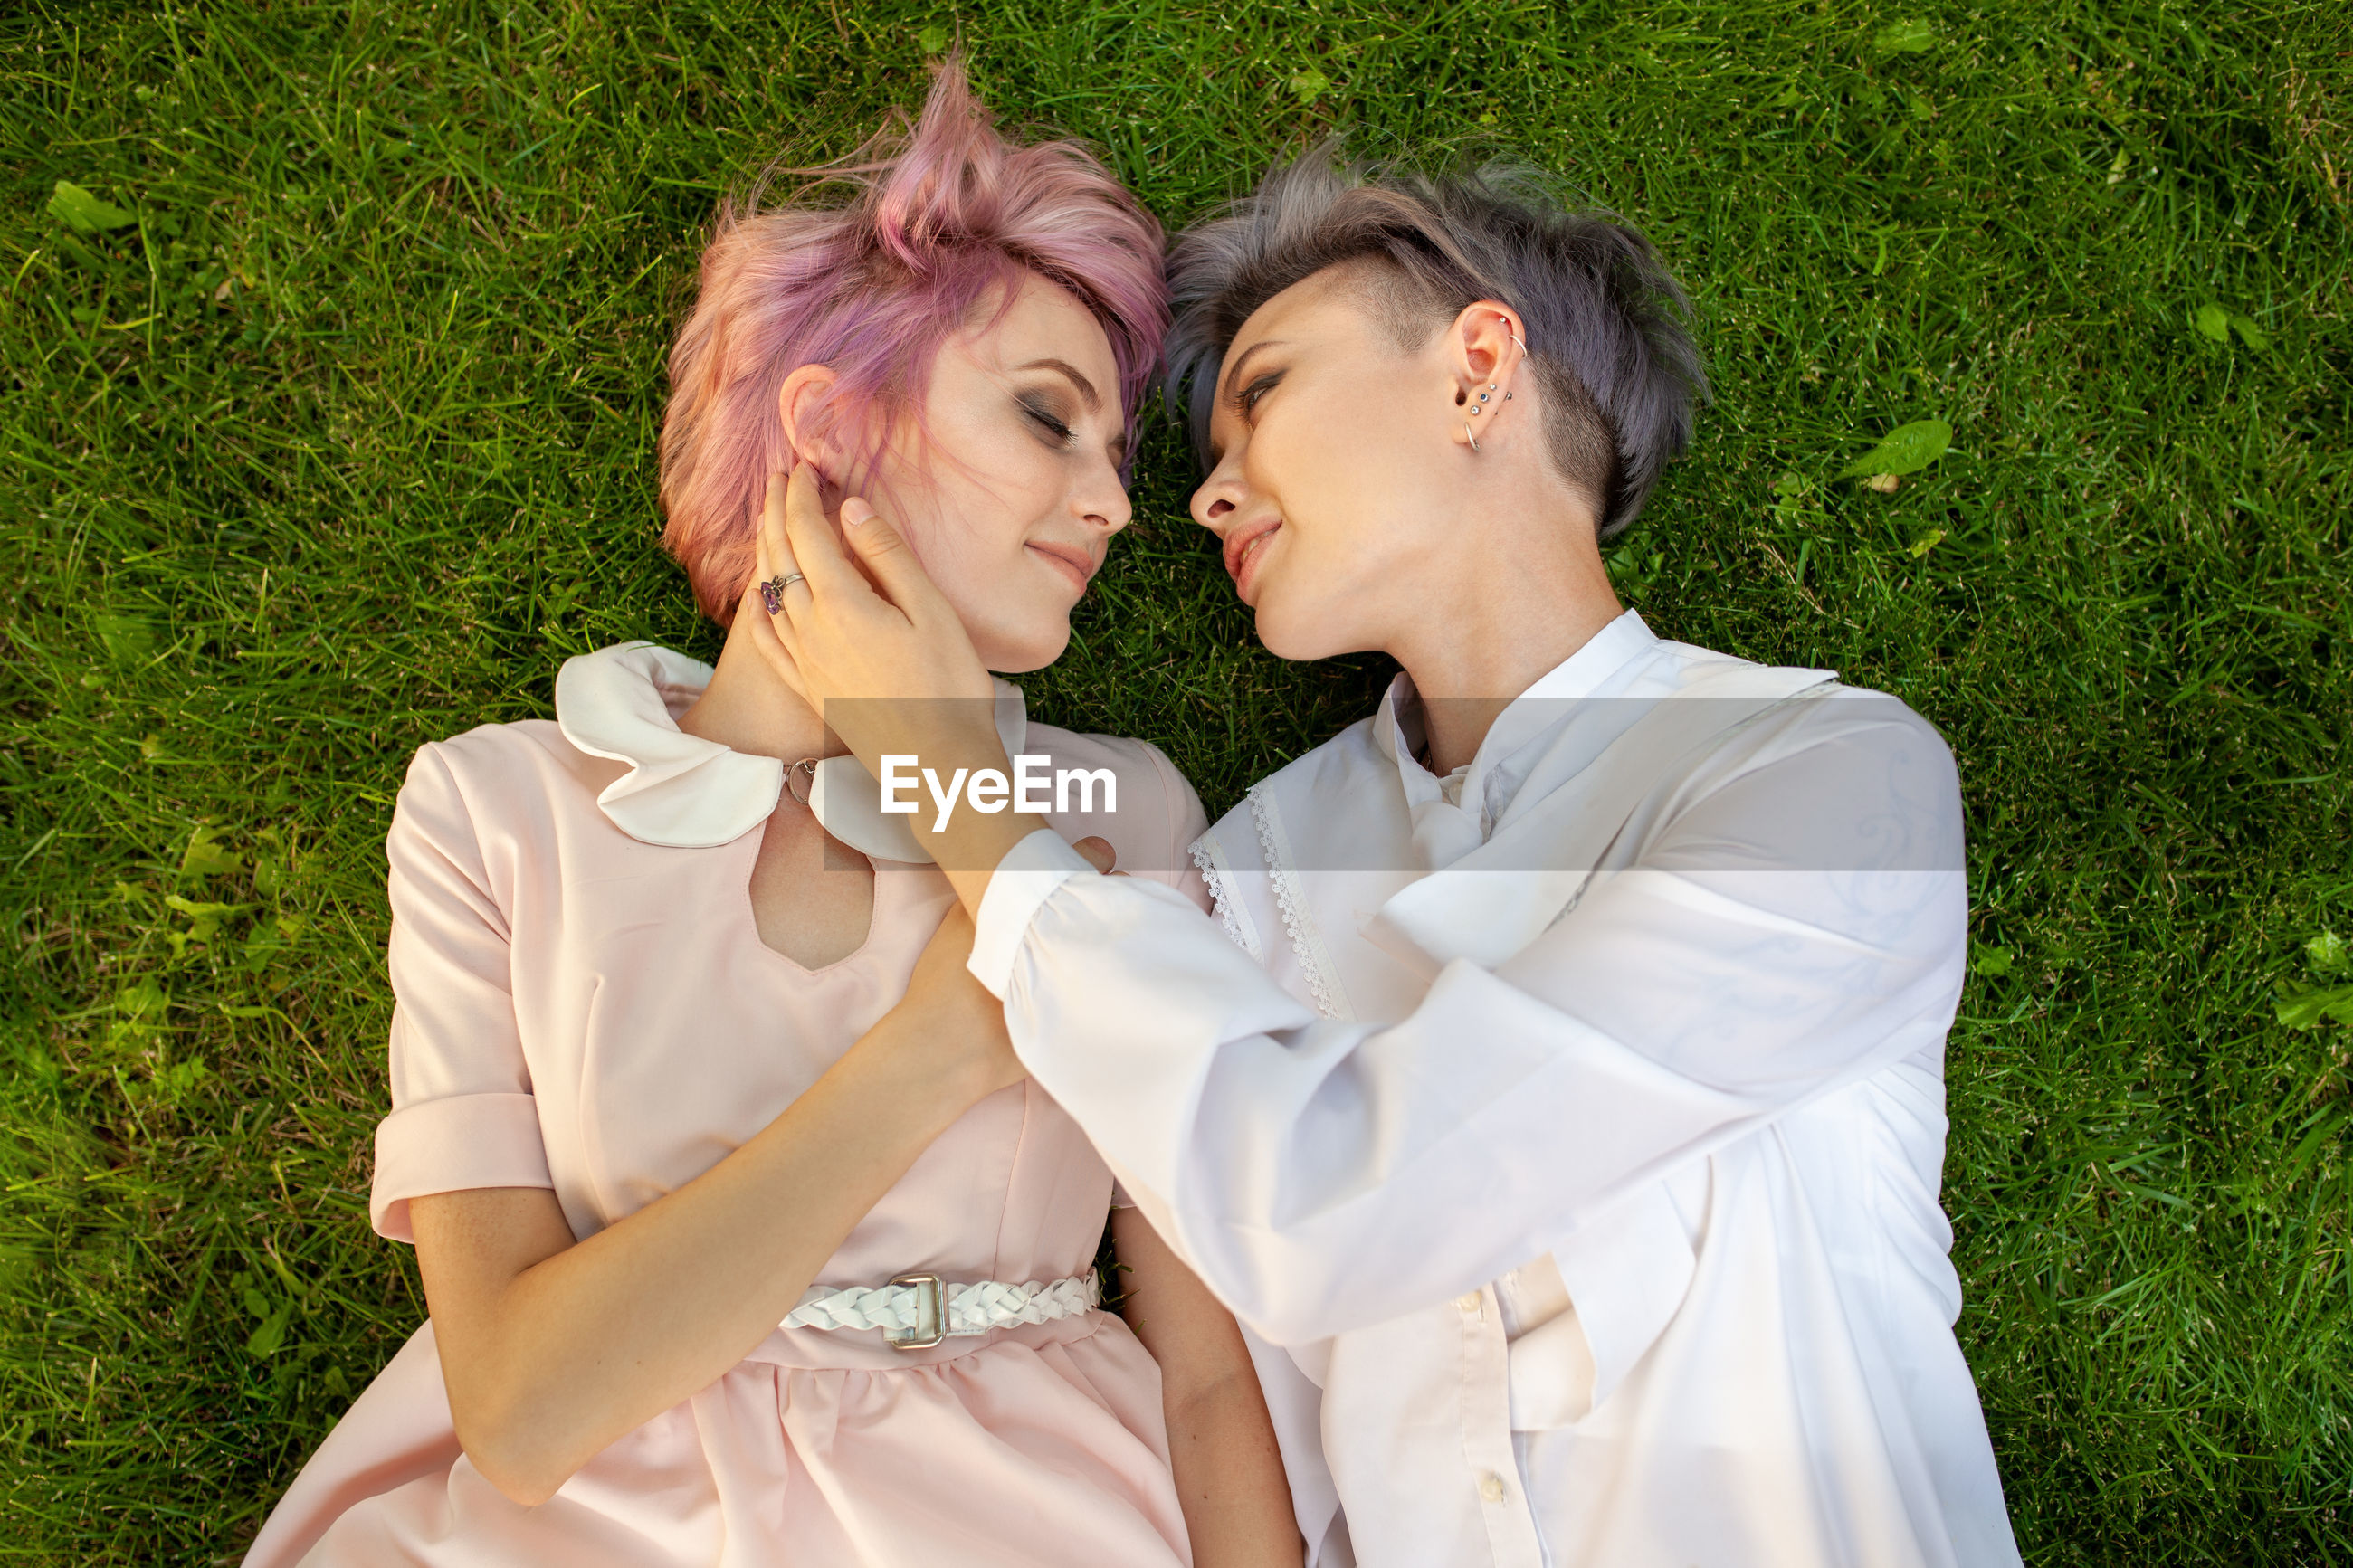 Directly above shot of romantic lesbians lying on grassy field